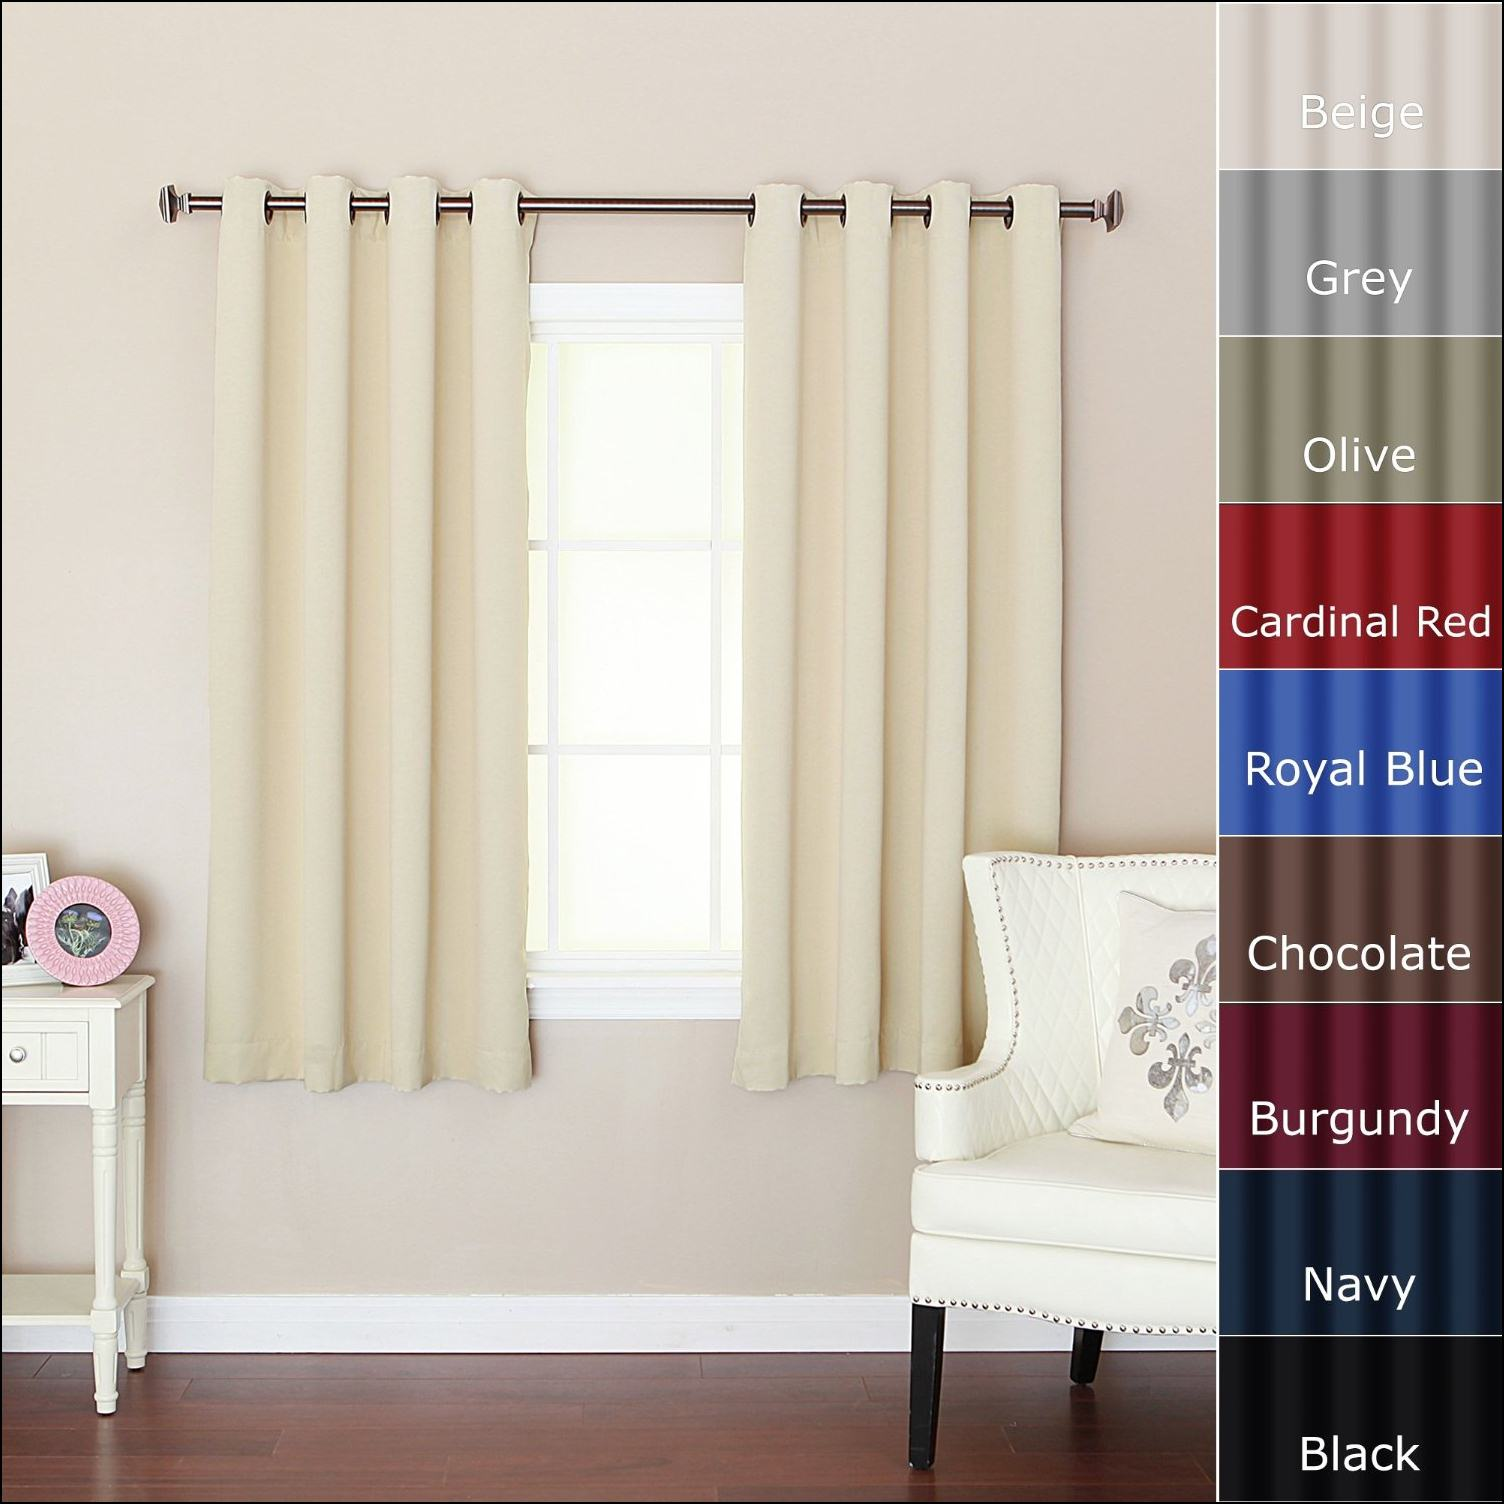 cool-design-ideas-of-window-curtain-with-beige-color-curtains-and-combine-with-silver-color-metal-rod-as-well-as-curtain-rod-also-panel-curtains